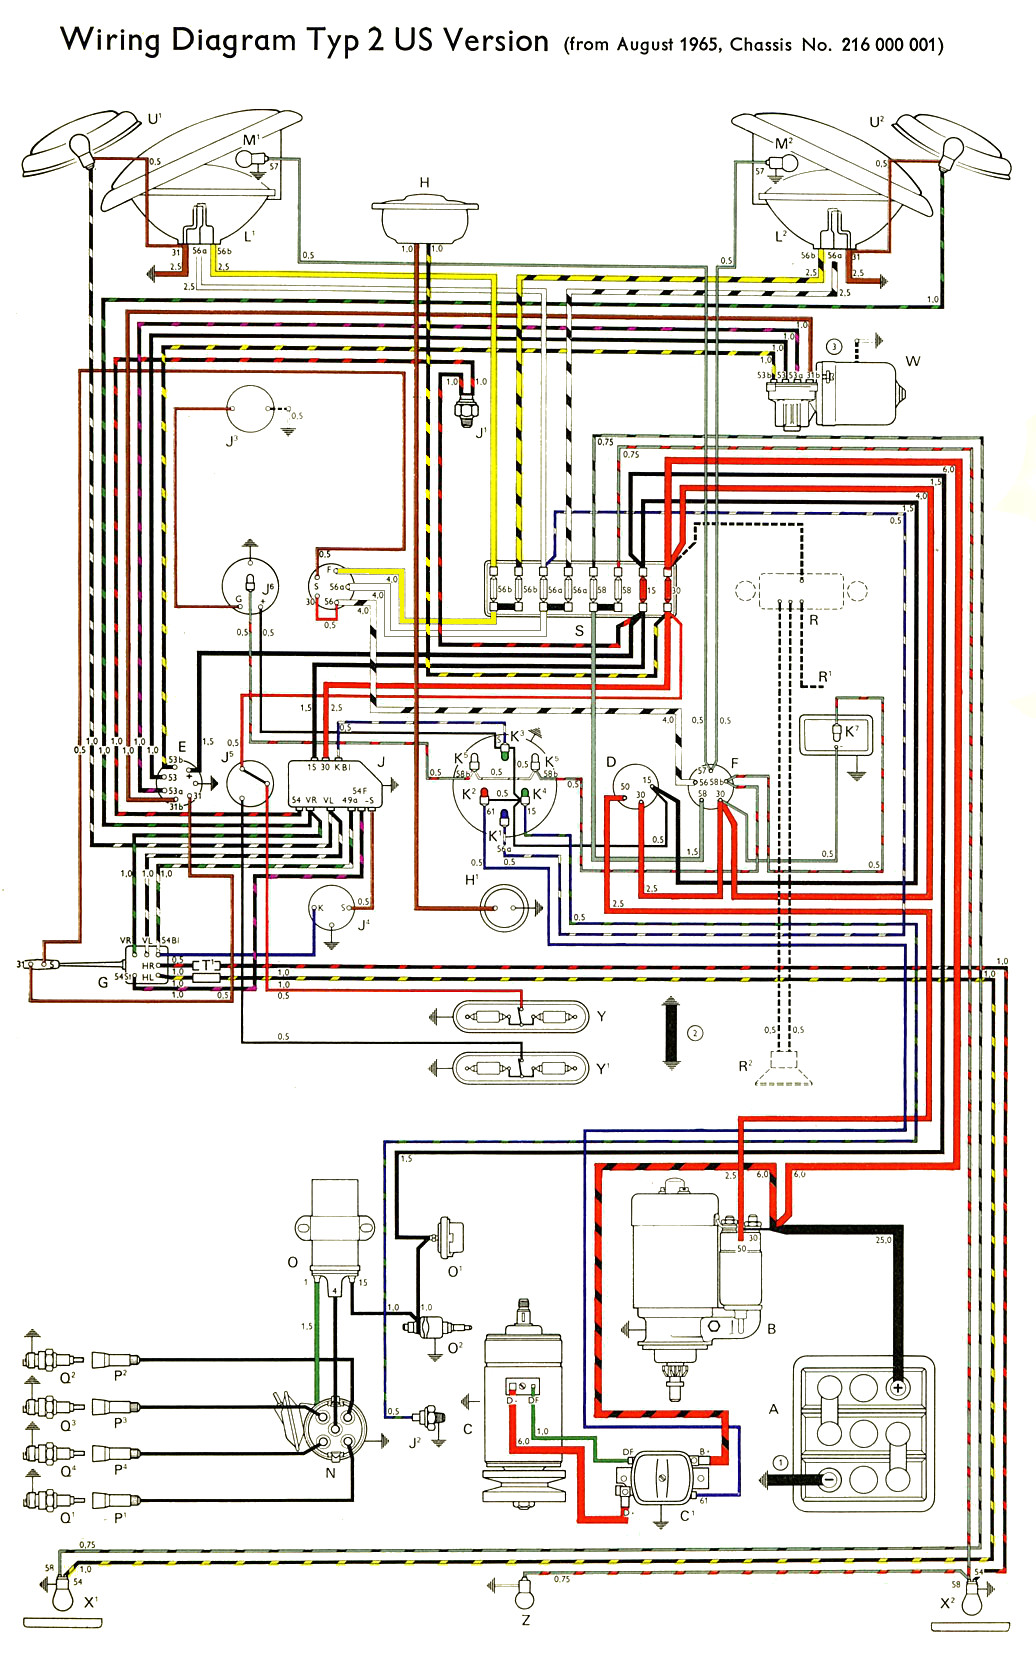 bus_66_USA thesamba com type 2 wiring diagrams VW Wiring Harness Diagram at edmiracle.co